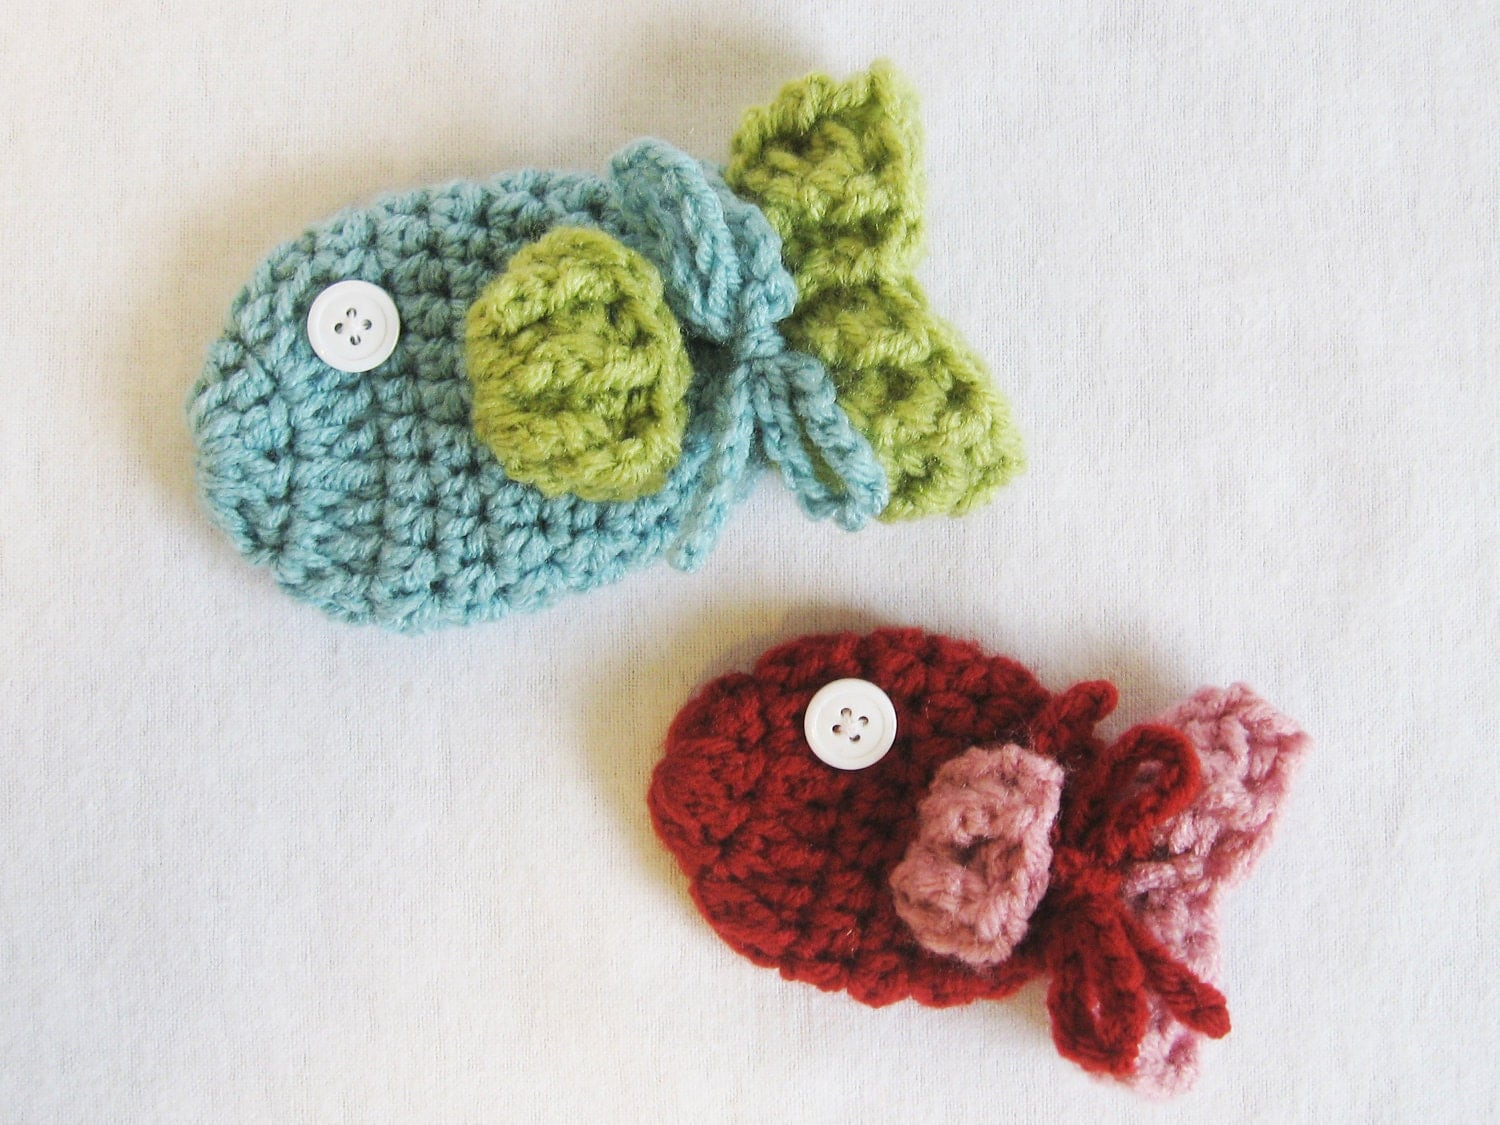 Crochet Baby Gloves Pattern : Baby CROCHET PATTERN Baby Fish Mittens 3 sizes included from